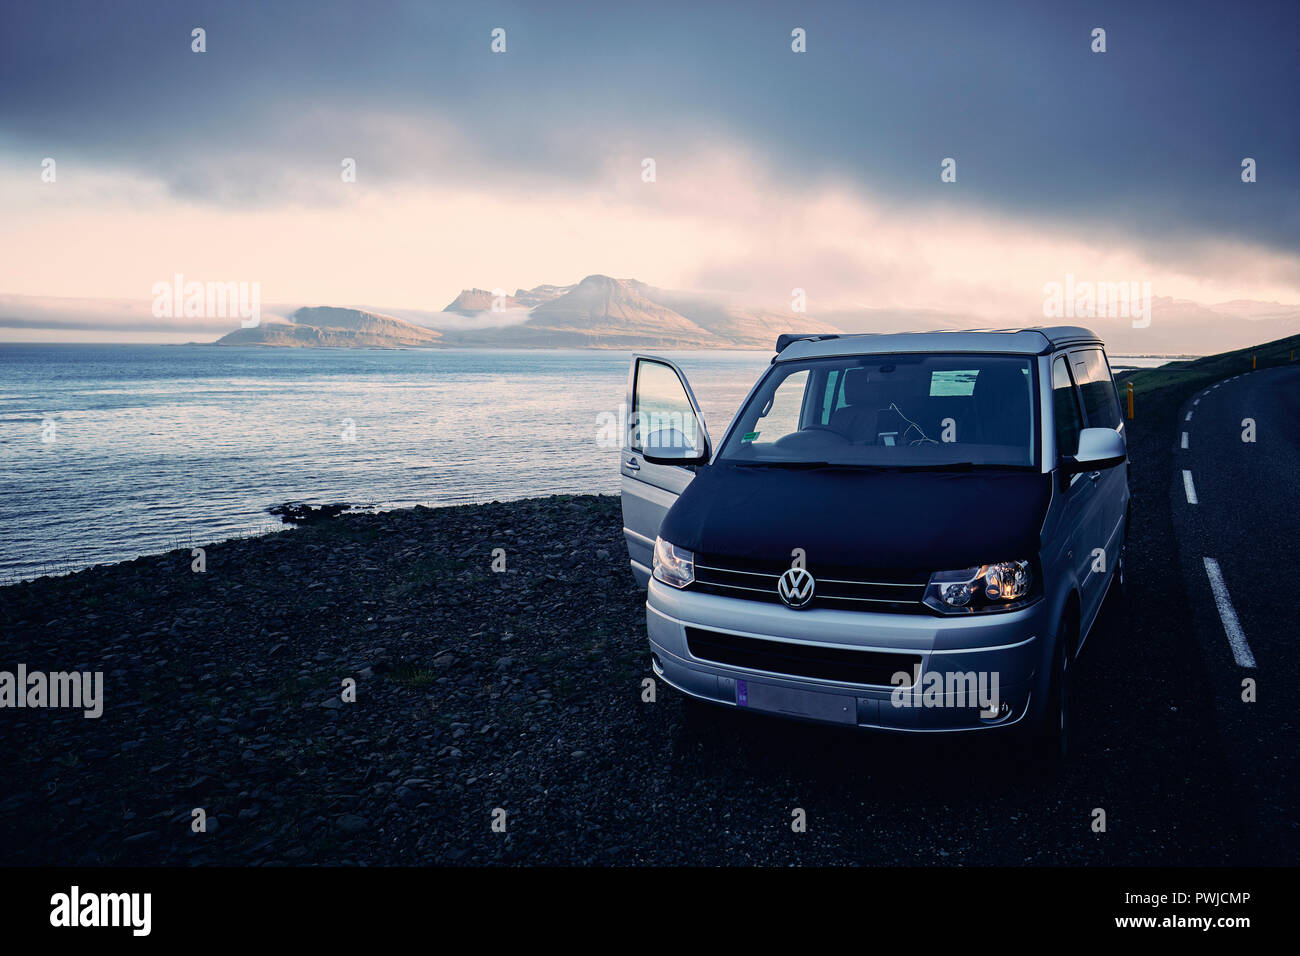 A VW California T5 camper van traveling the Iceland coastal road in south east Iceland.. Stock Photo